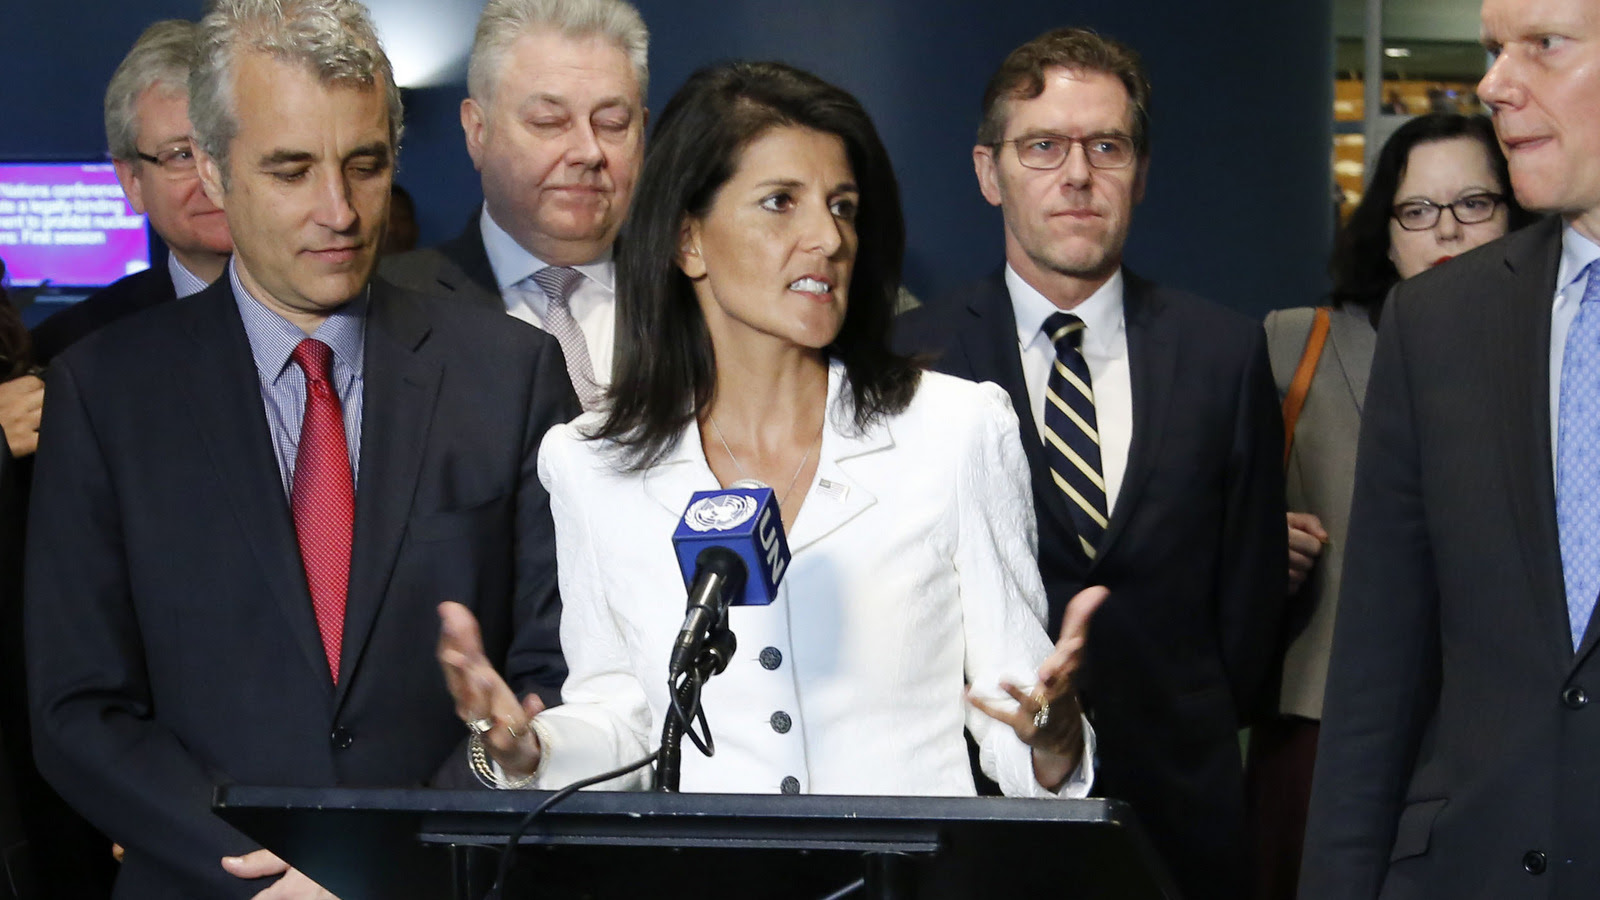 United States Ambassador to the United Nations Nikki Haley, center, speaks to reporters outside the General Assembly at U.N. headquarters, Monday, March 27, 2017. (AP/Seth Wenig)